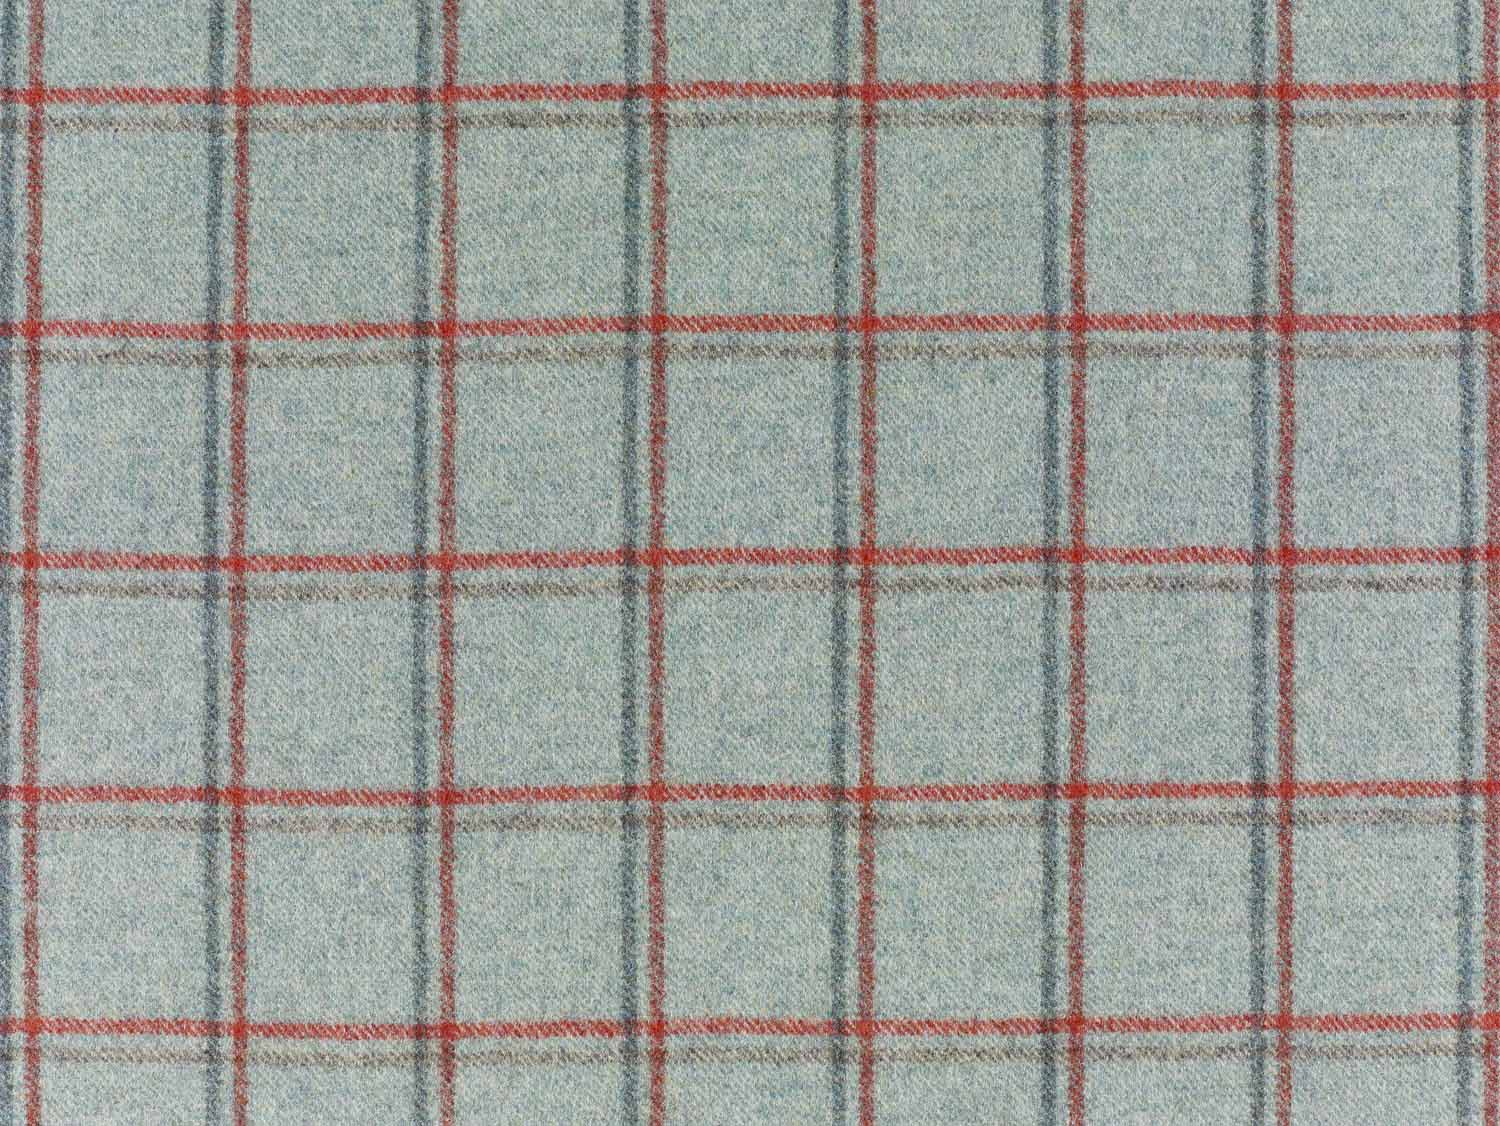 San Francisco Jade, British Wool Tweed Fat Quarter